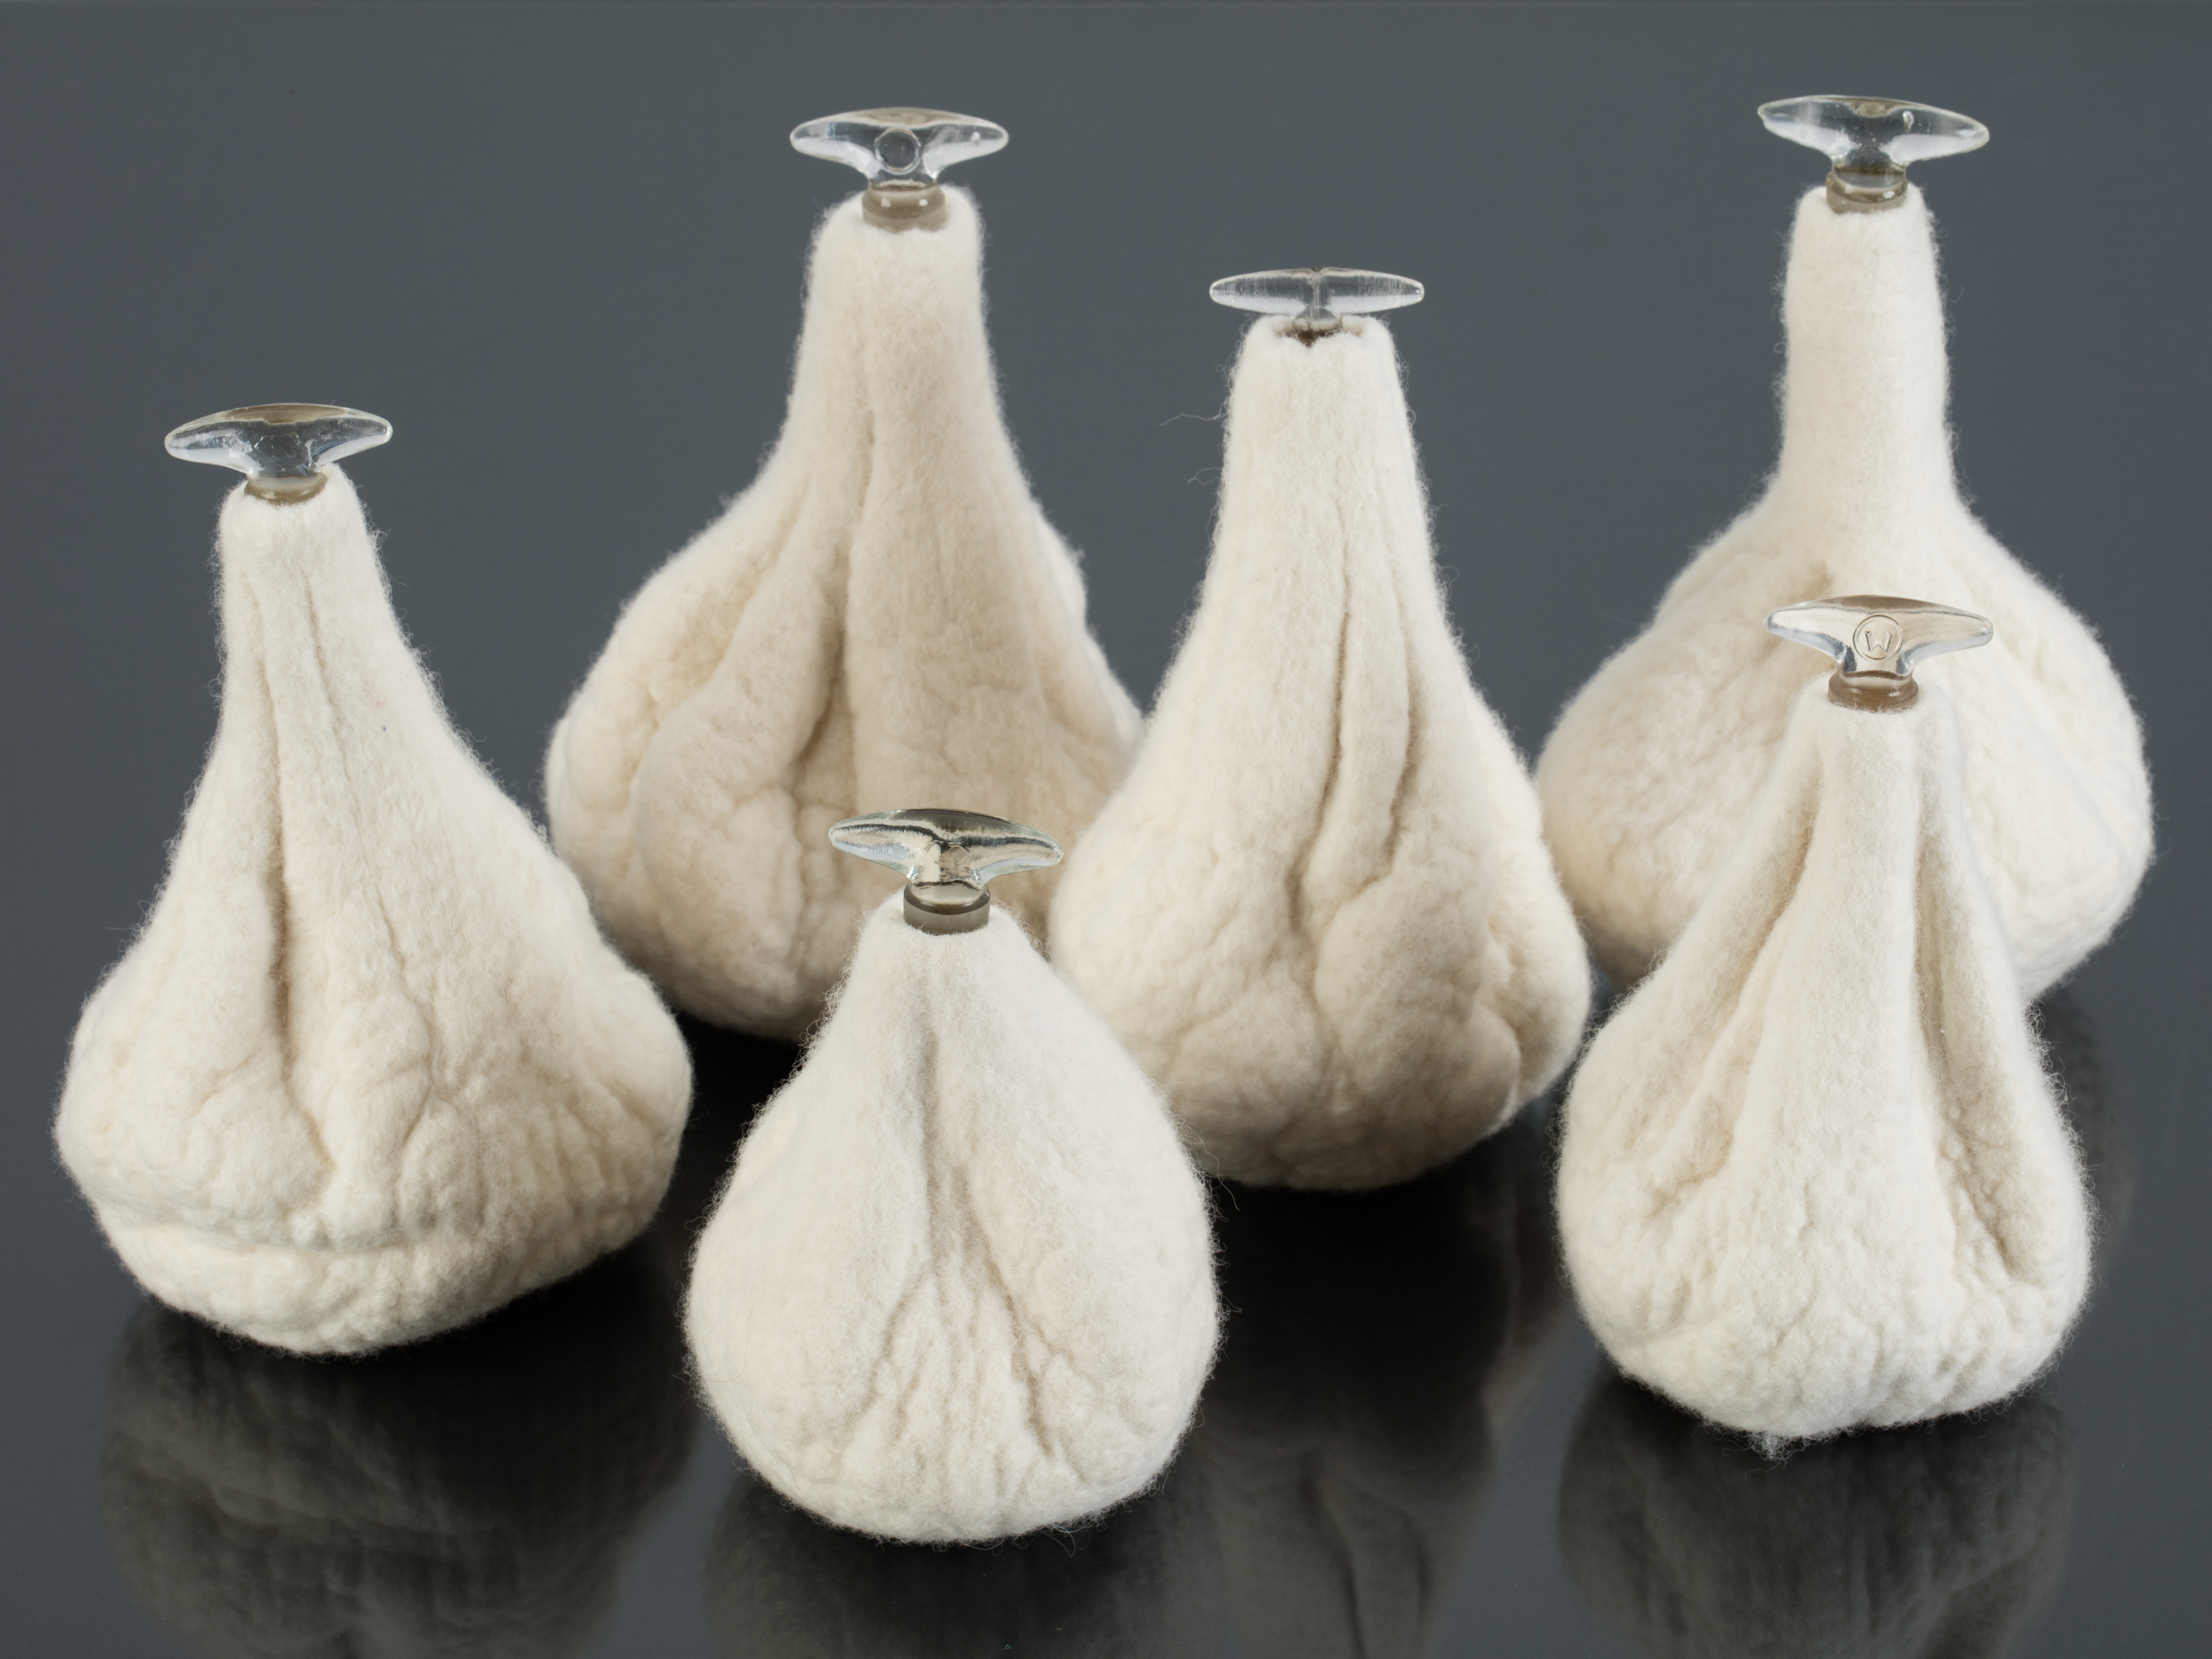 Felt bottles with glass stoppers